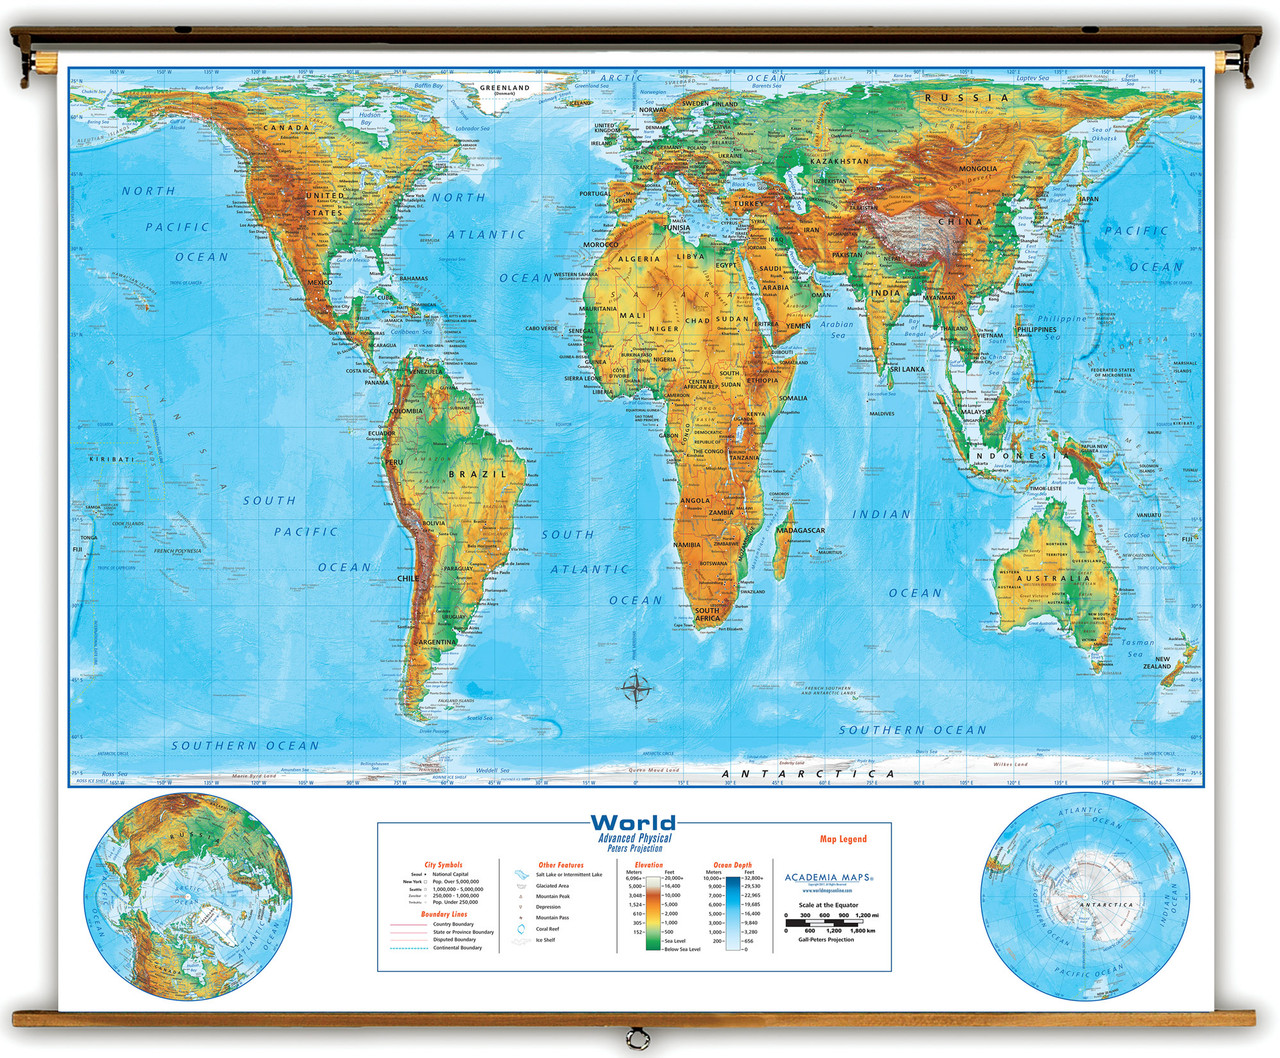 Image of: Peters Projection World Map Advanced Physical Classroom Map From Academia Maps